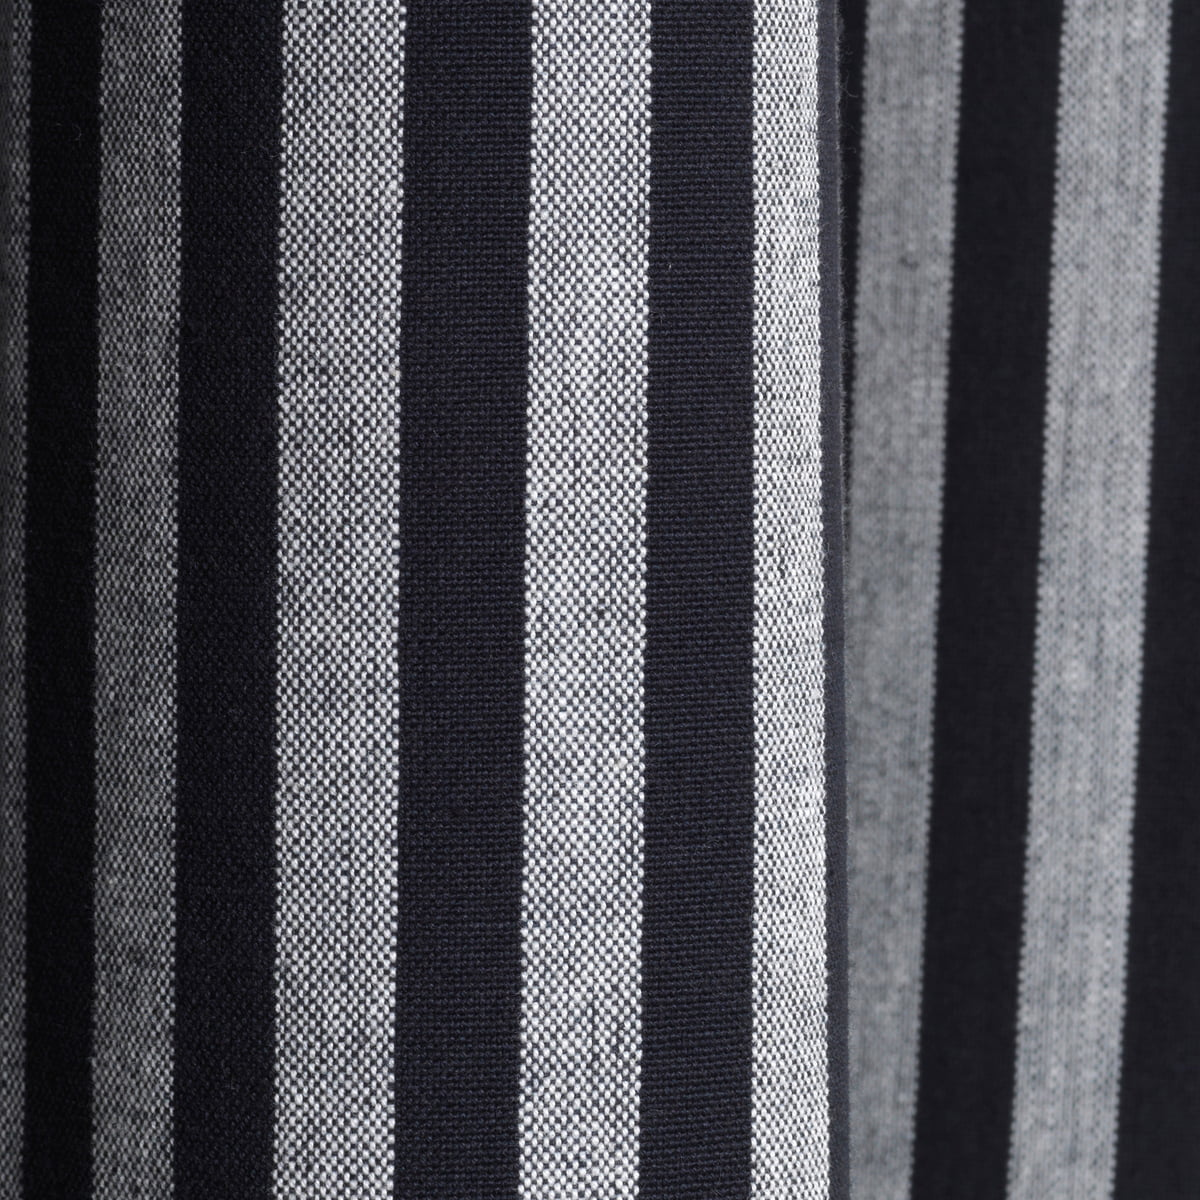 categories steel black home en the curtain canada depot inch accessories fabric white grey bath shower tub in curtains p w bathroom liner hardware h and striped x